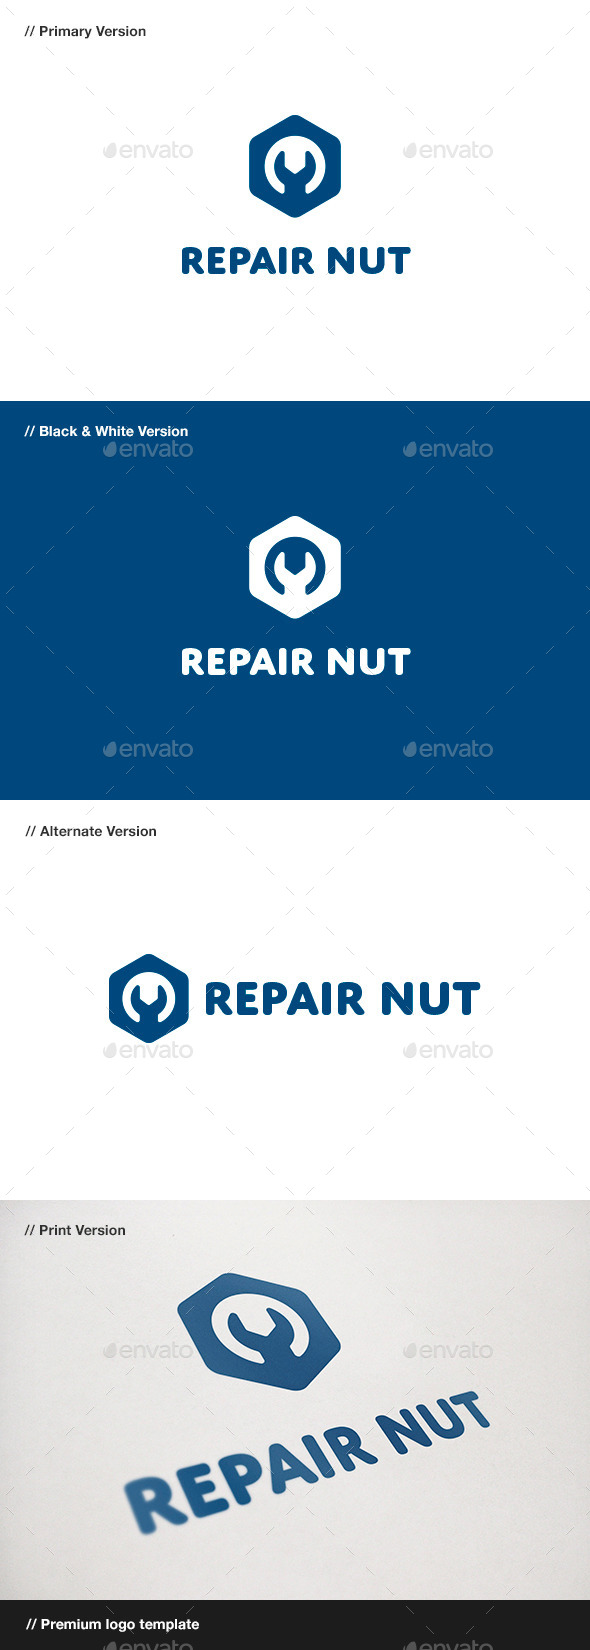 GraphicRiver Repair Nut Logo 11019159